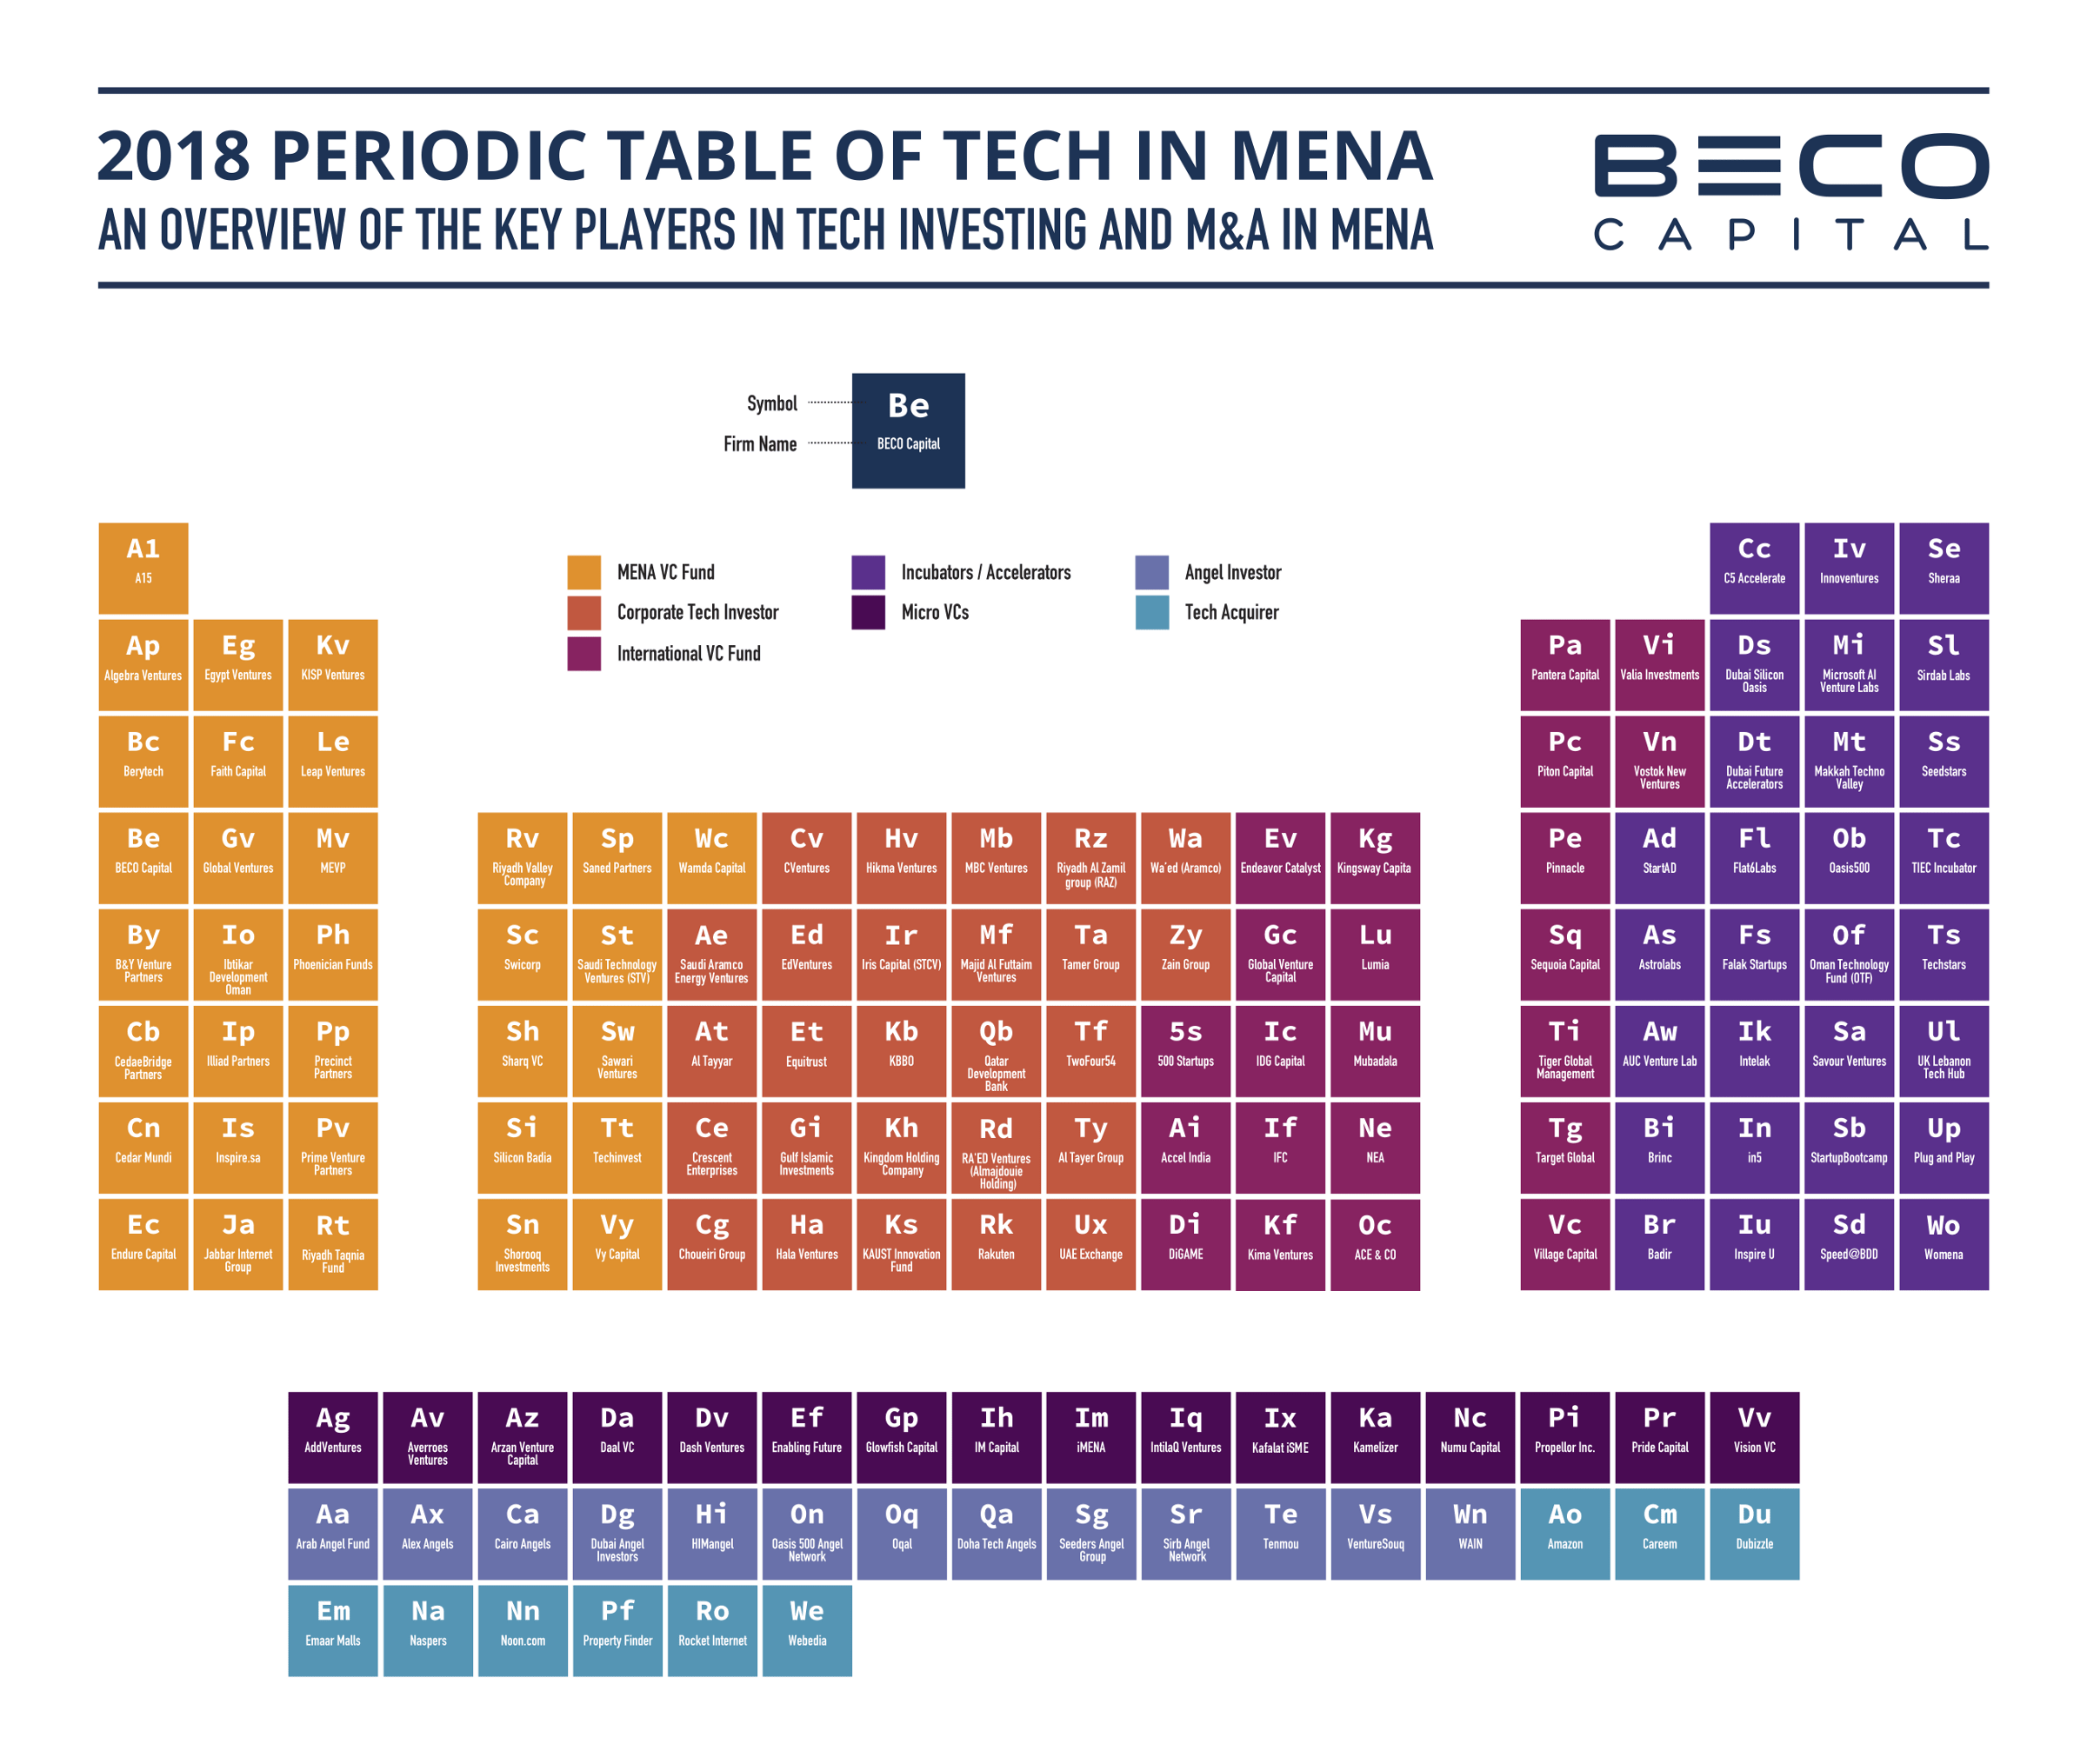 2018 Periodic Table of Tech Investors in MENA